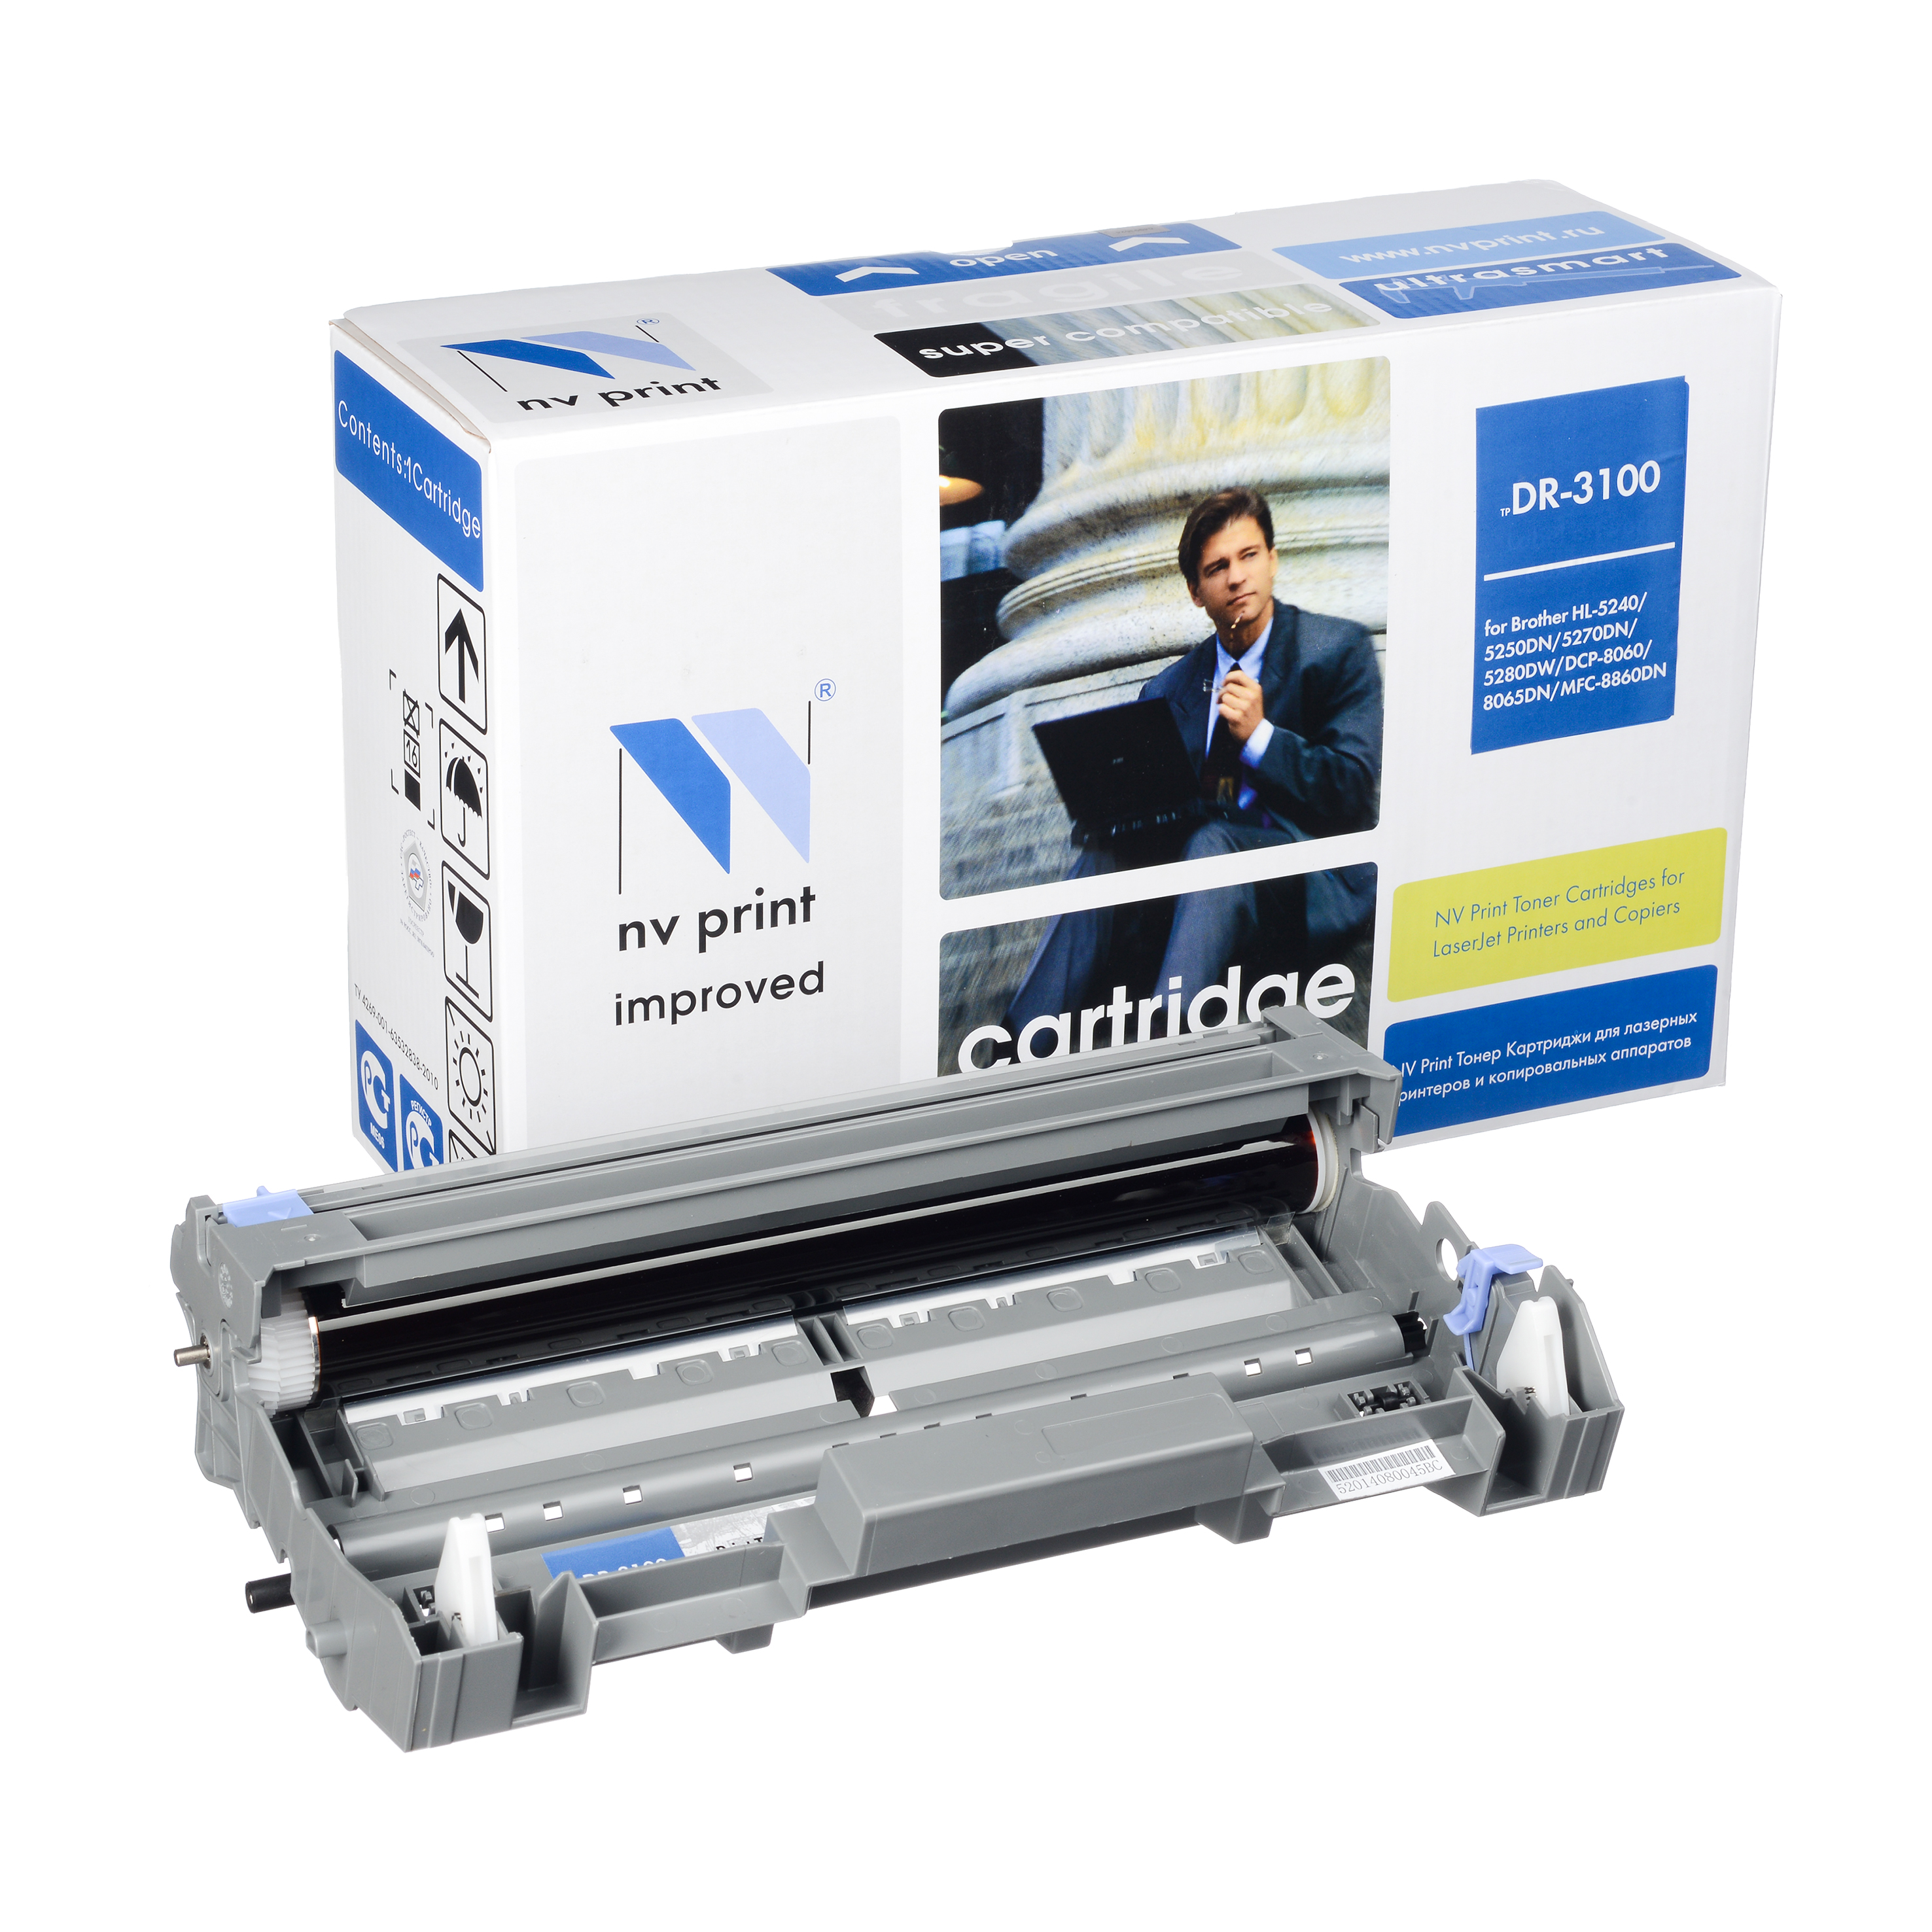 Барабан NV Print Brother DR-3100Барабан NV Print для Brother HL5240/5250DN/5270DN, MFC8460N/8860DN, DCP8065DNБарабан NV Print для Brother HL5240/5250DN/5270DN, MFC8460N/8860DN, DCP8065DN